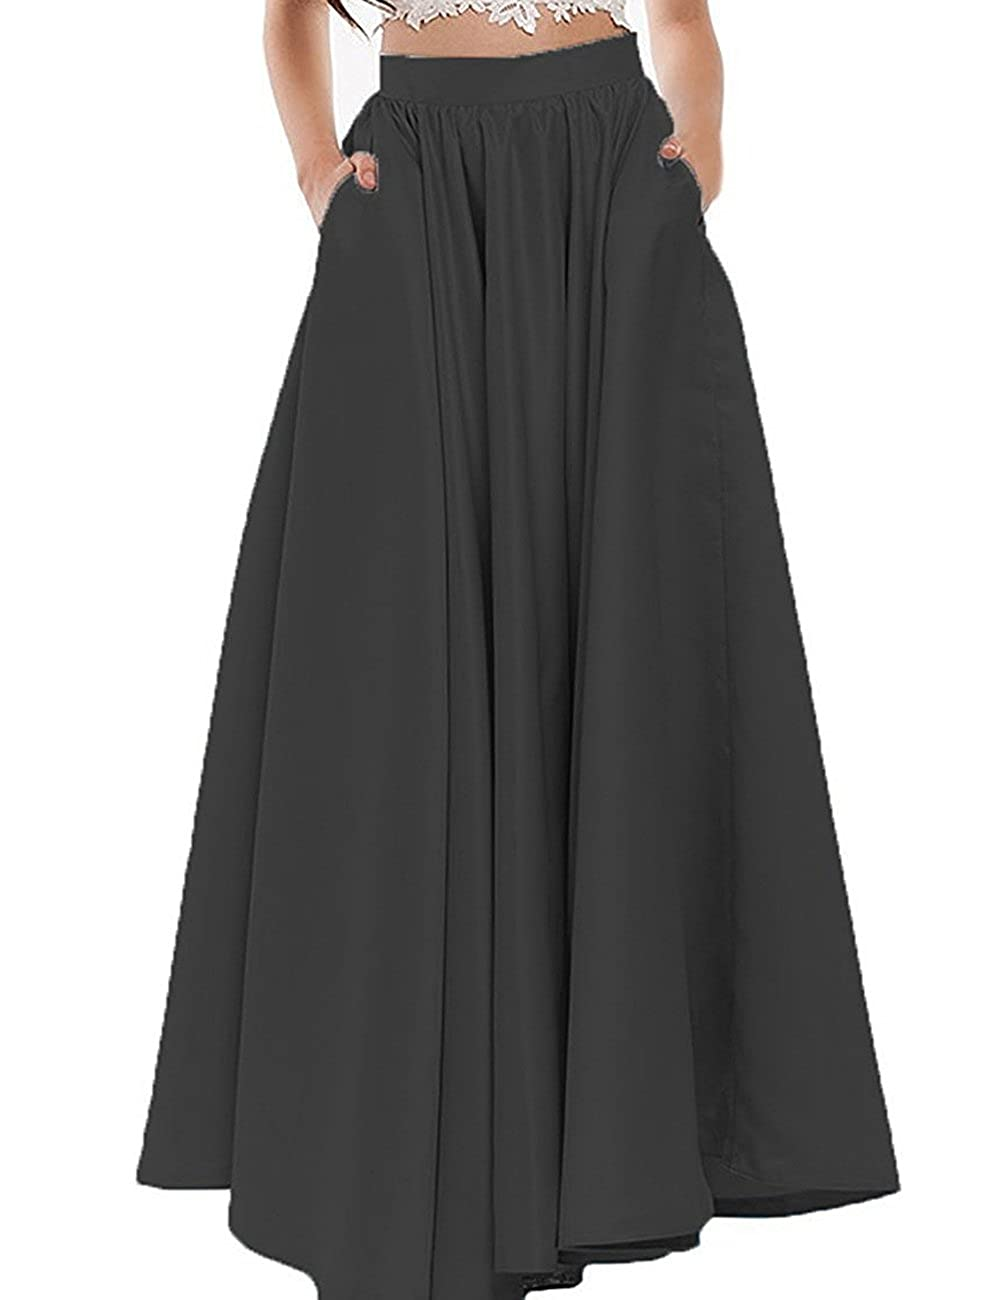 Victorian Costumes: Dresses, Saloon Girls, Southern Belle, Witch Duraplast Womens Skirt Long Satin A-Line Prom Skirt With Pockets $35.99 AT vintagedancer.com